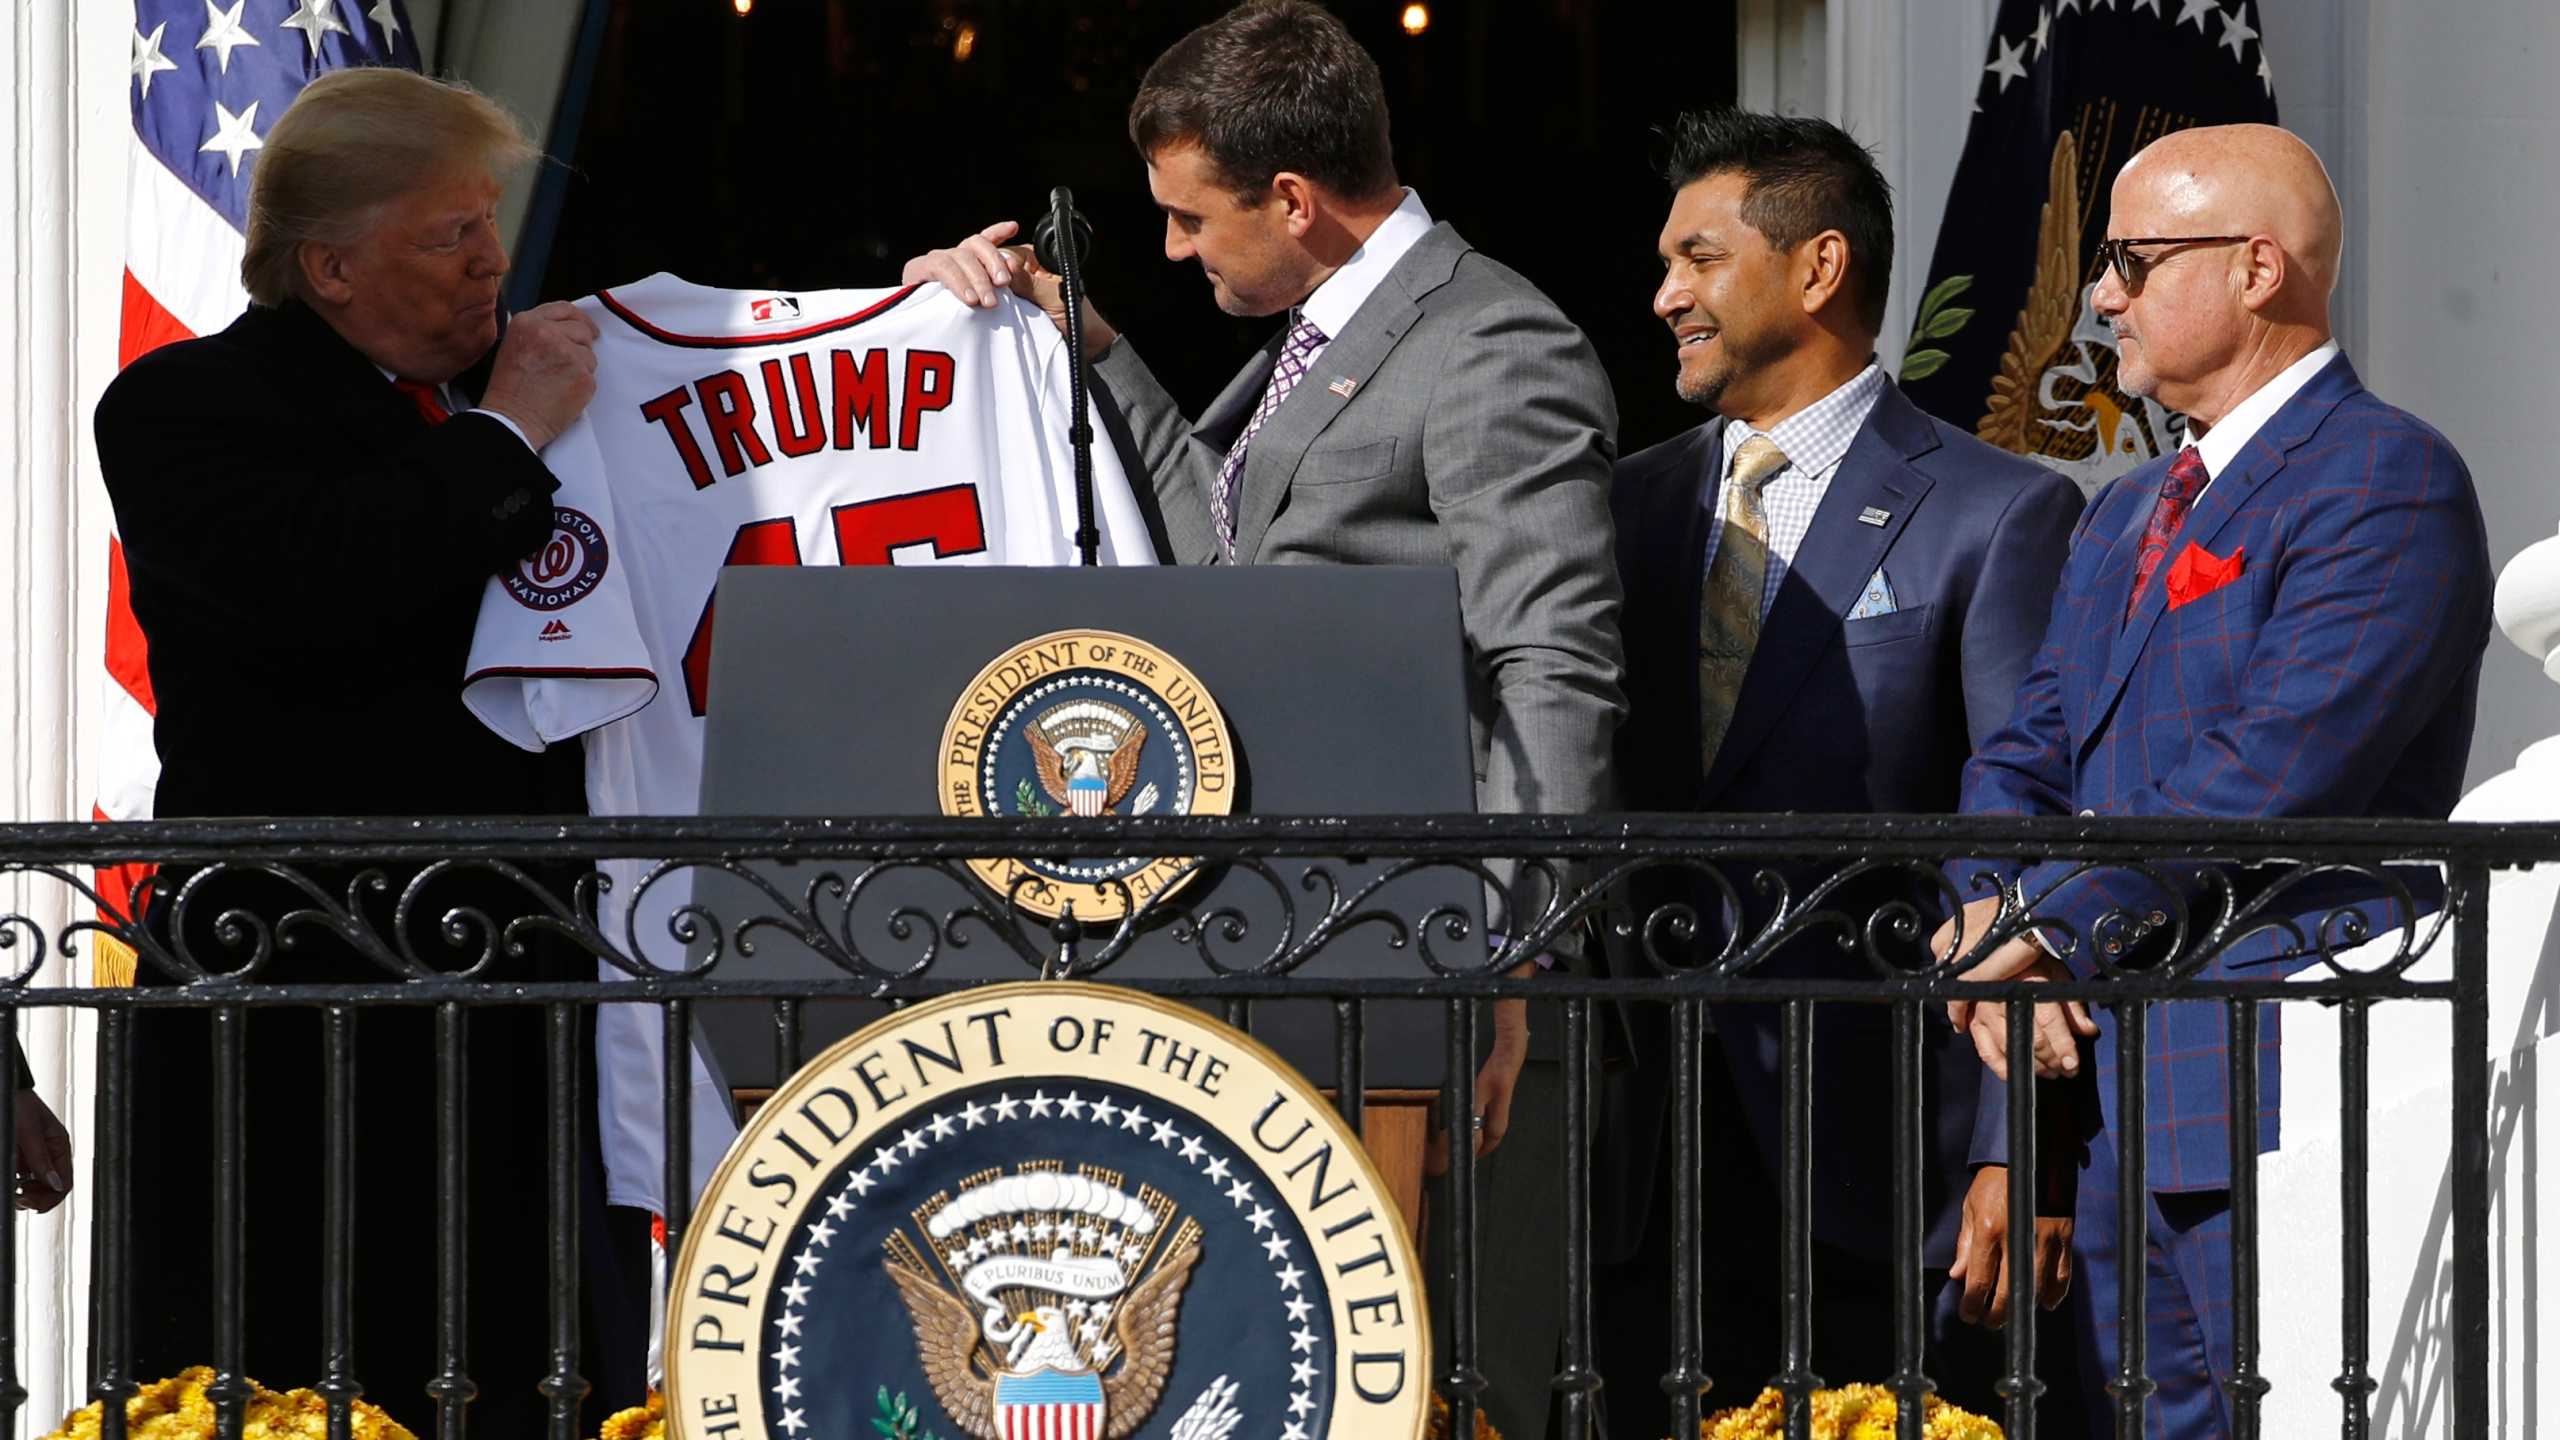 Ryan Zimmerman, Donald Trump, Dave Martinez, Mike Rizzo